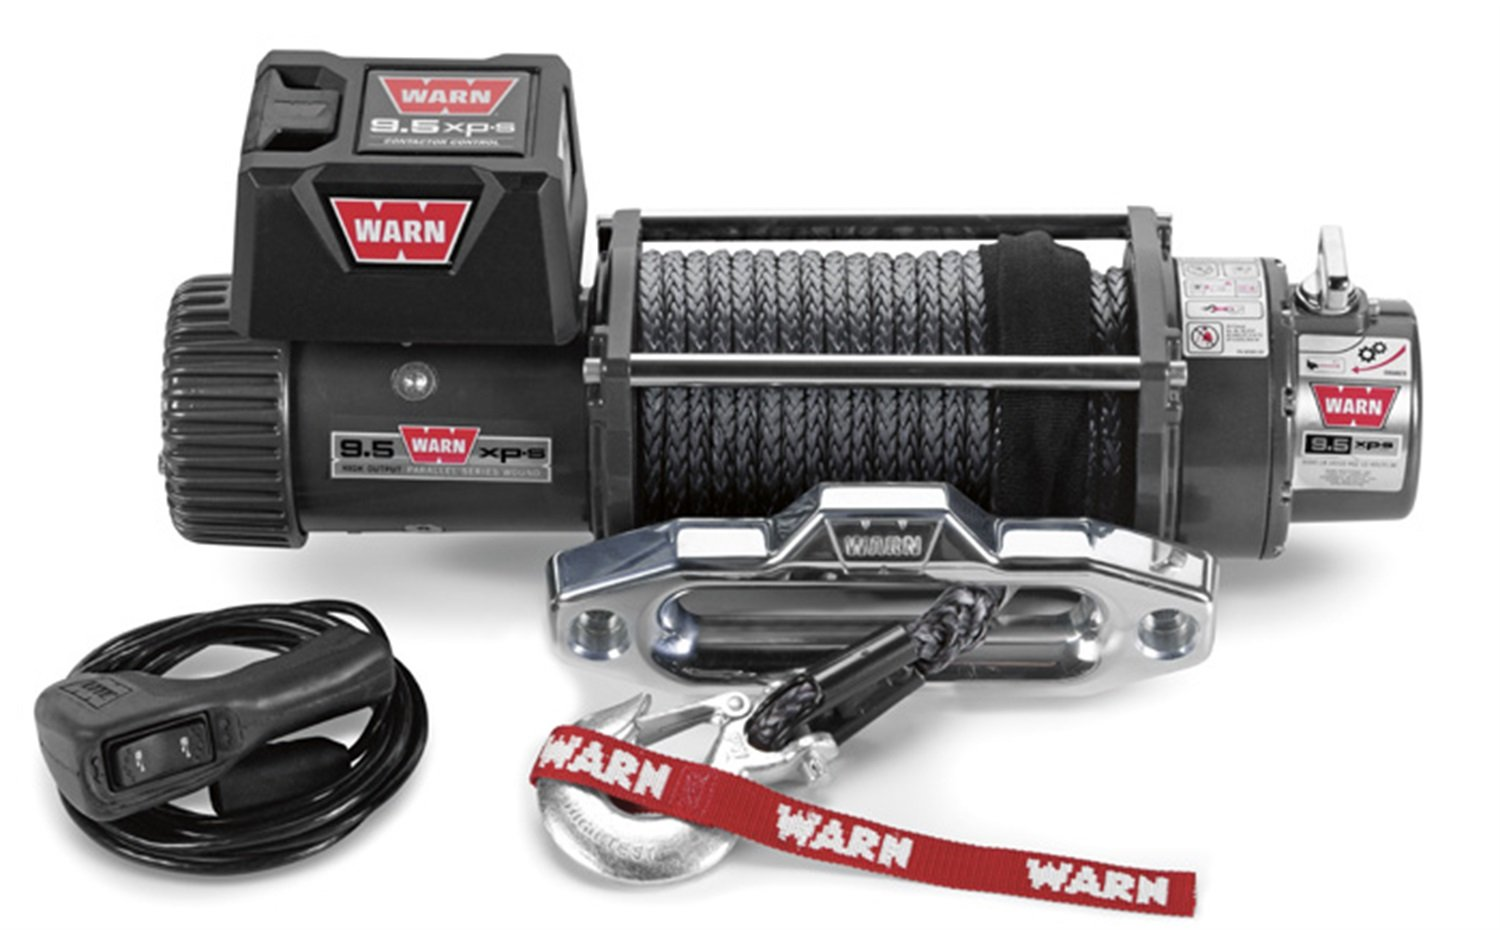 Warn 87310 95xp S Winch With Synthetic Rope Automotive Xd9000i Wiring Diagram Free Picture